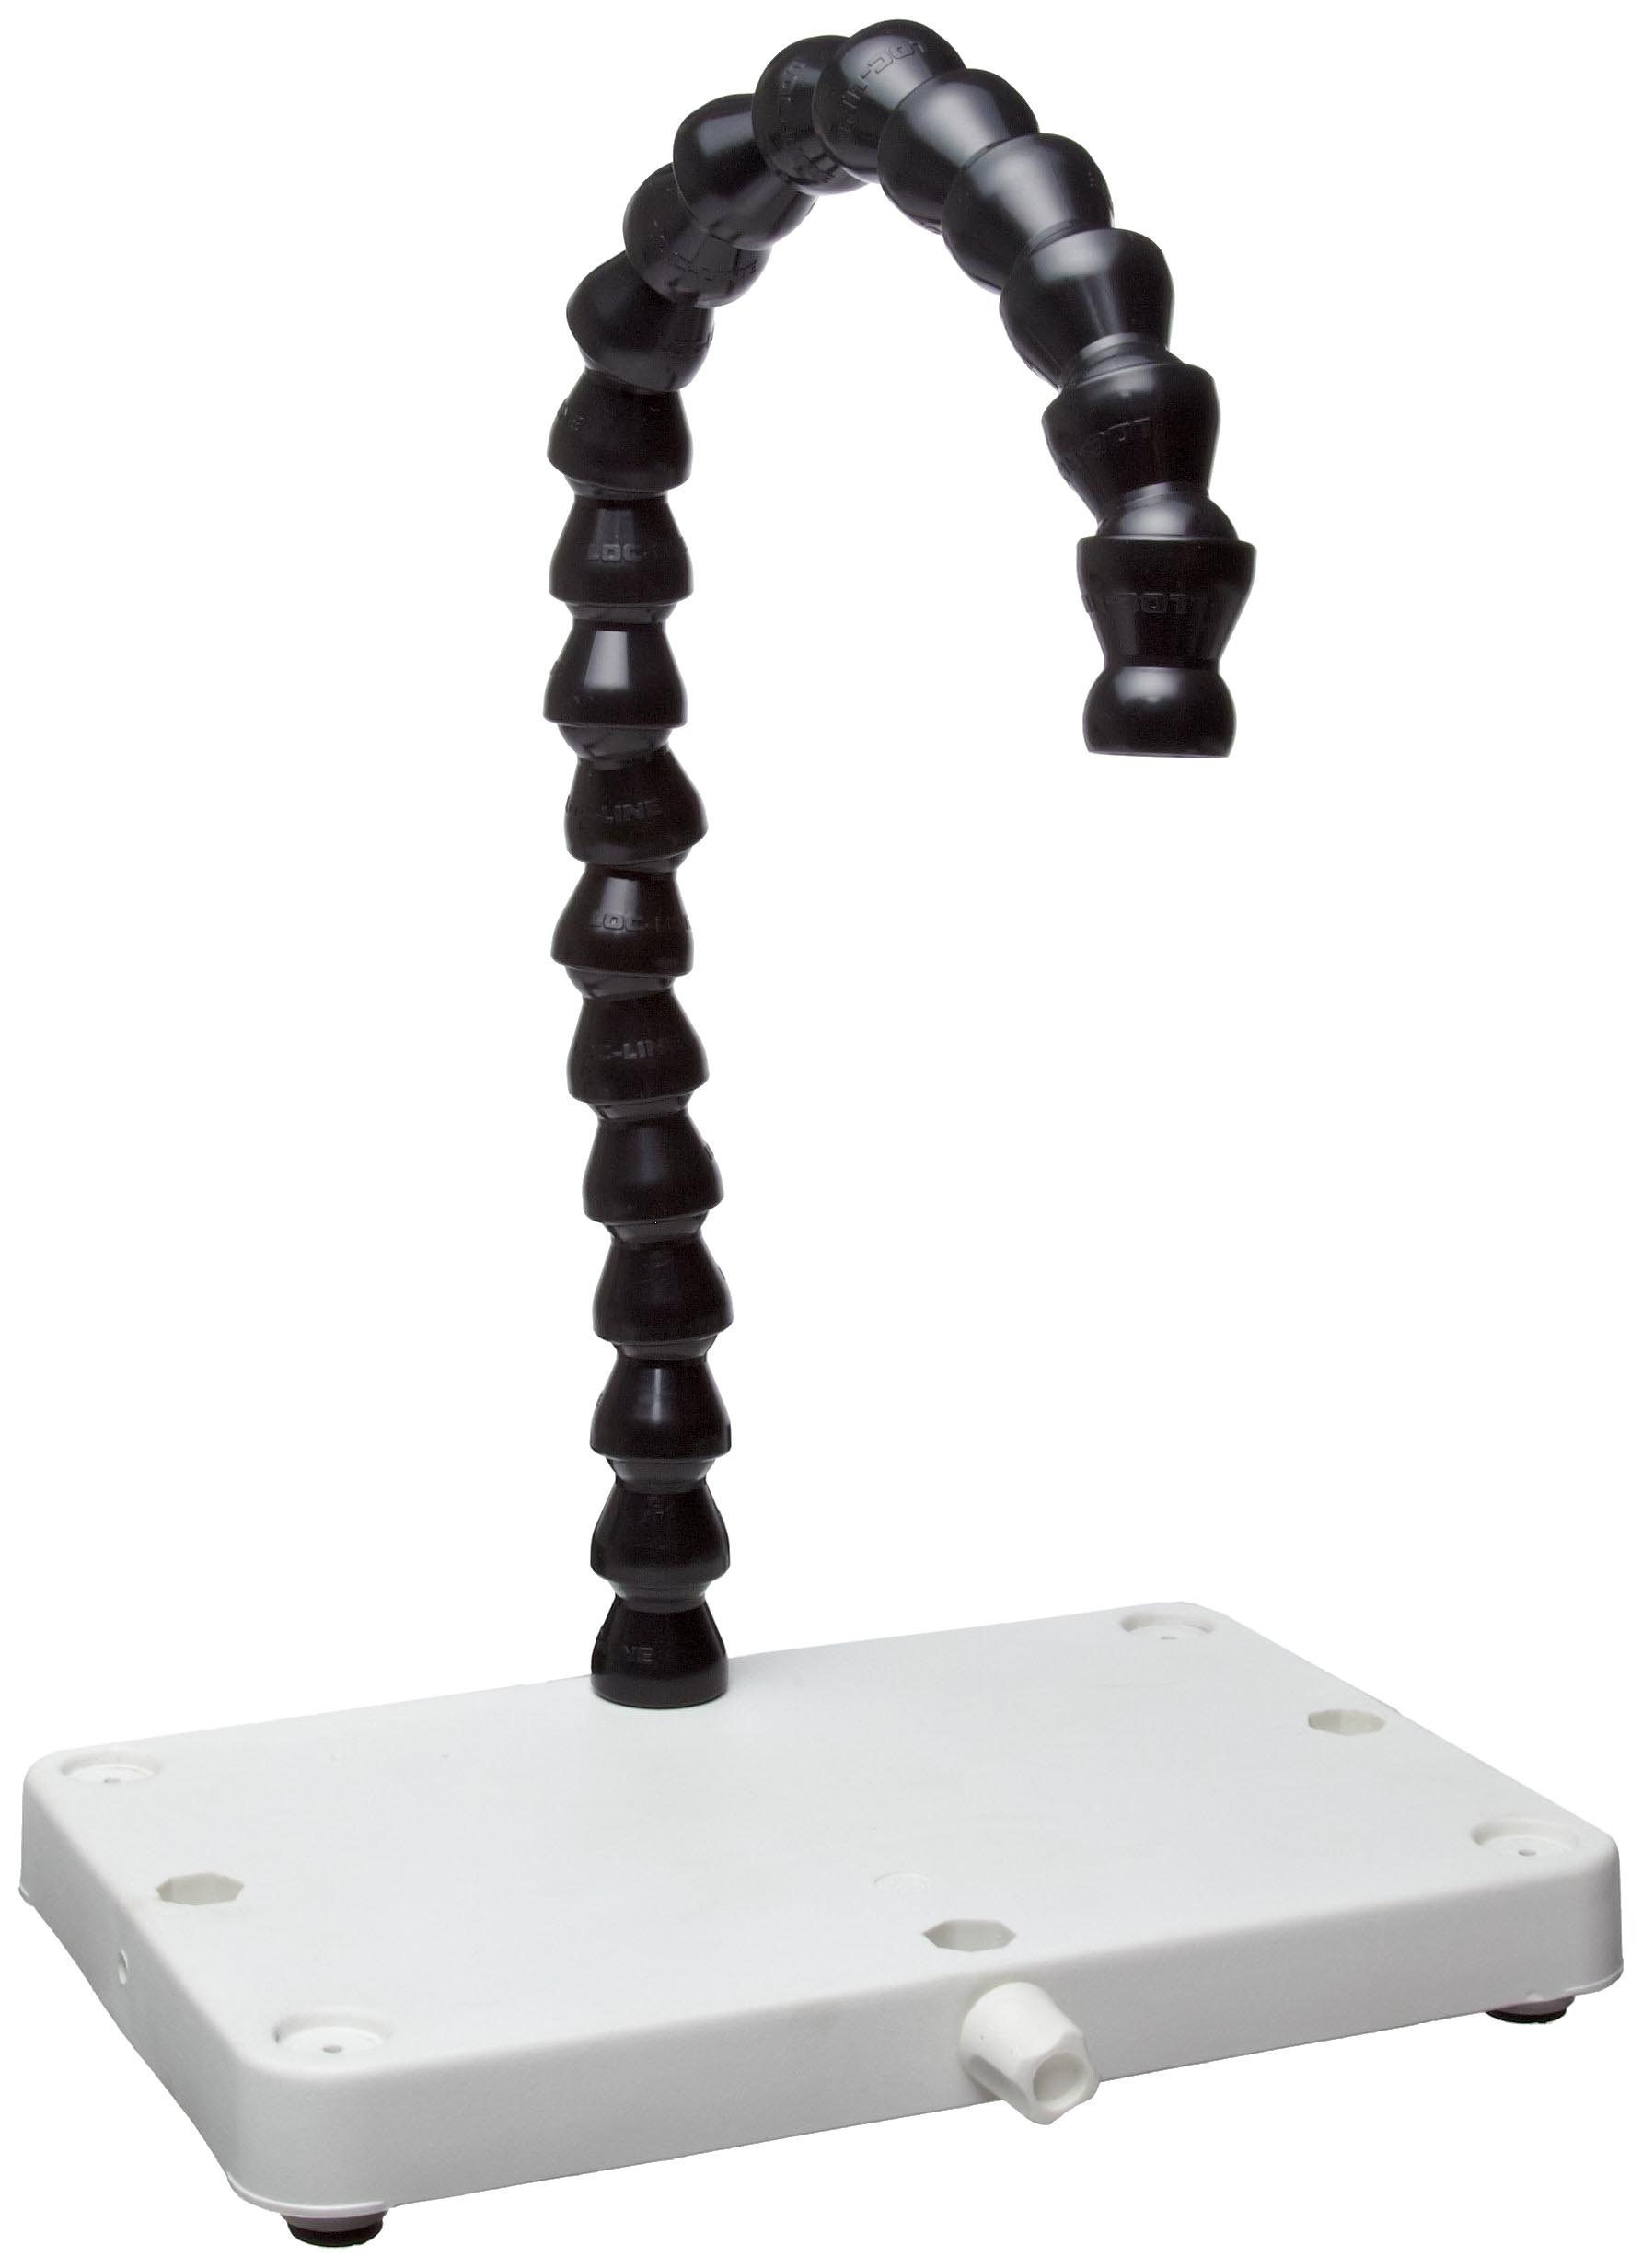 Bel-Art Multi-Purpose Flexible Arm Stand with Weighted Base (F18315-2322)